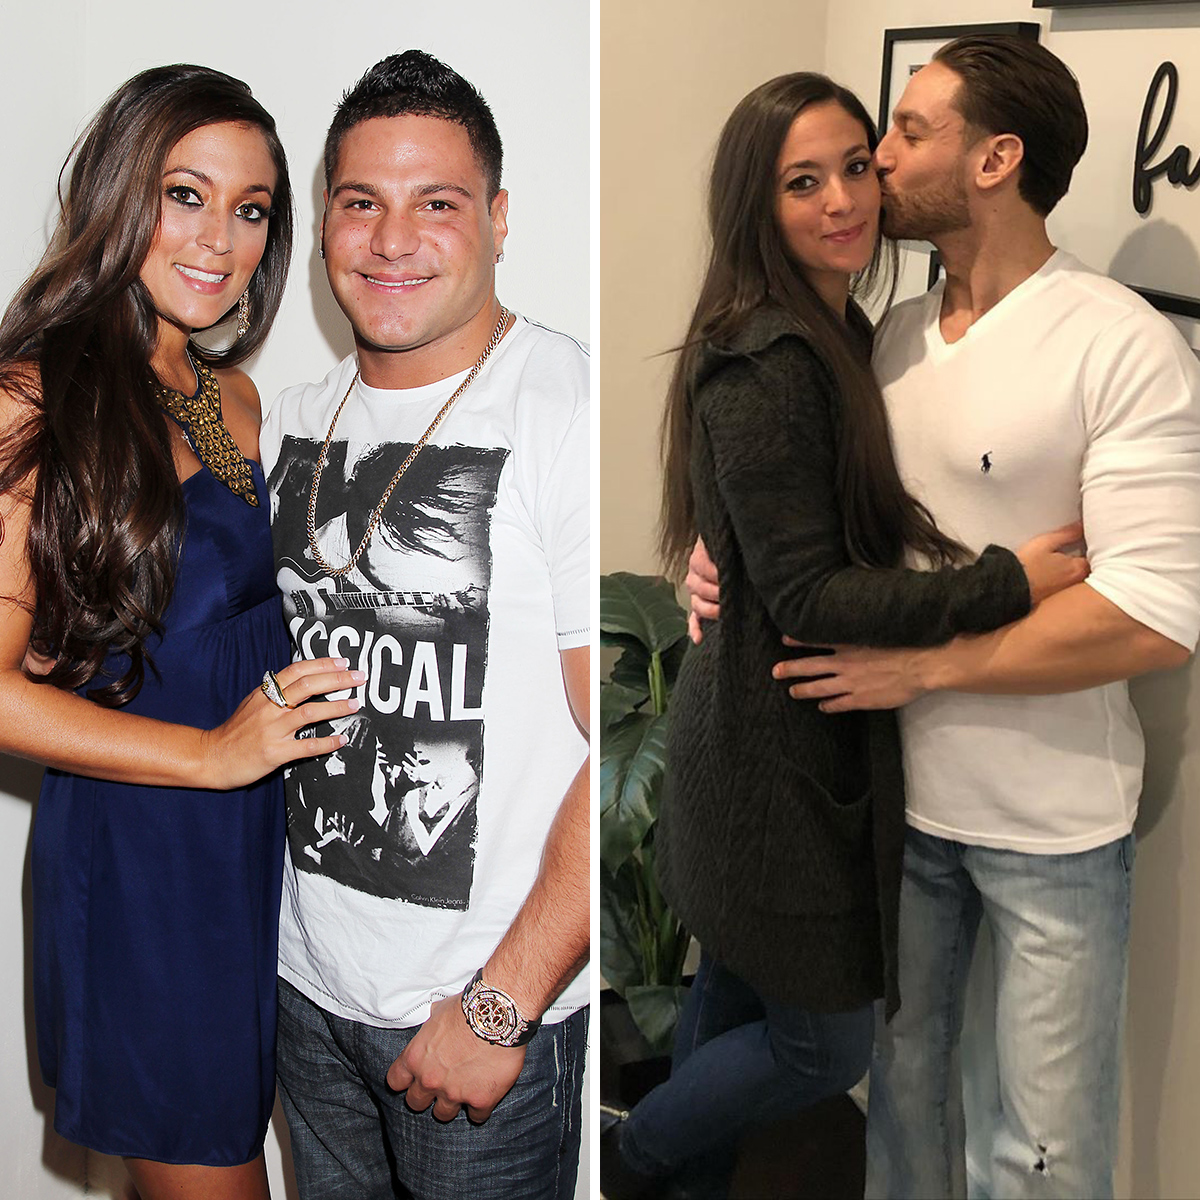 Sammi Sweetheart's Dating History: From Ronnie to Fiance Christian